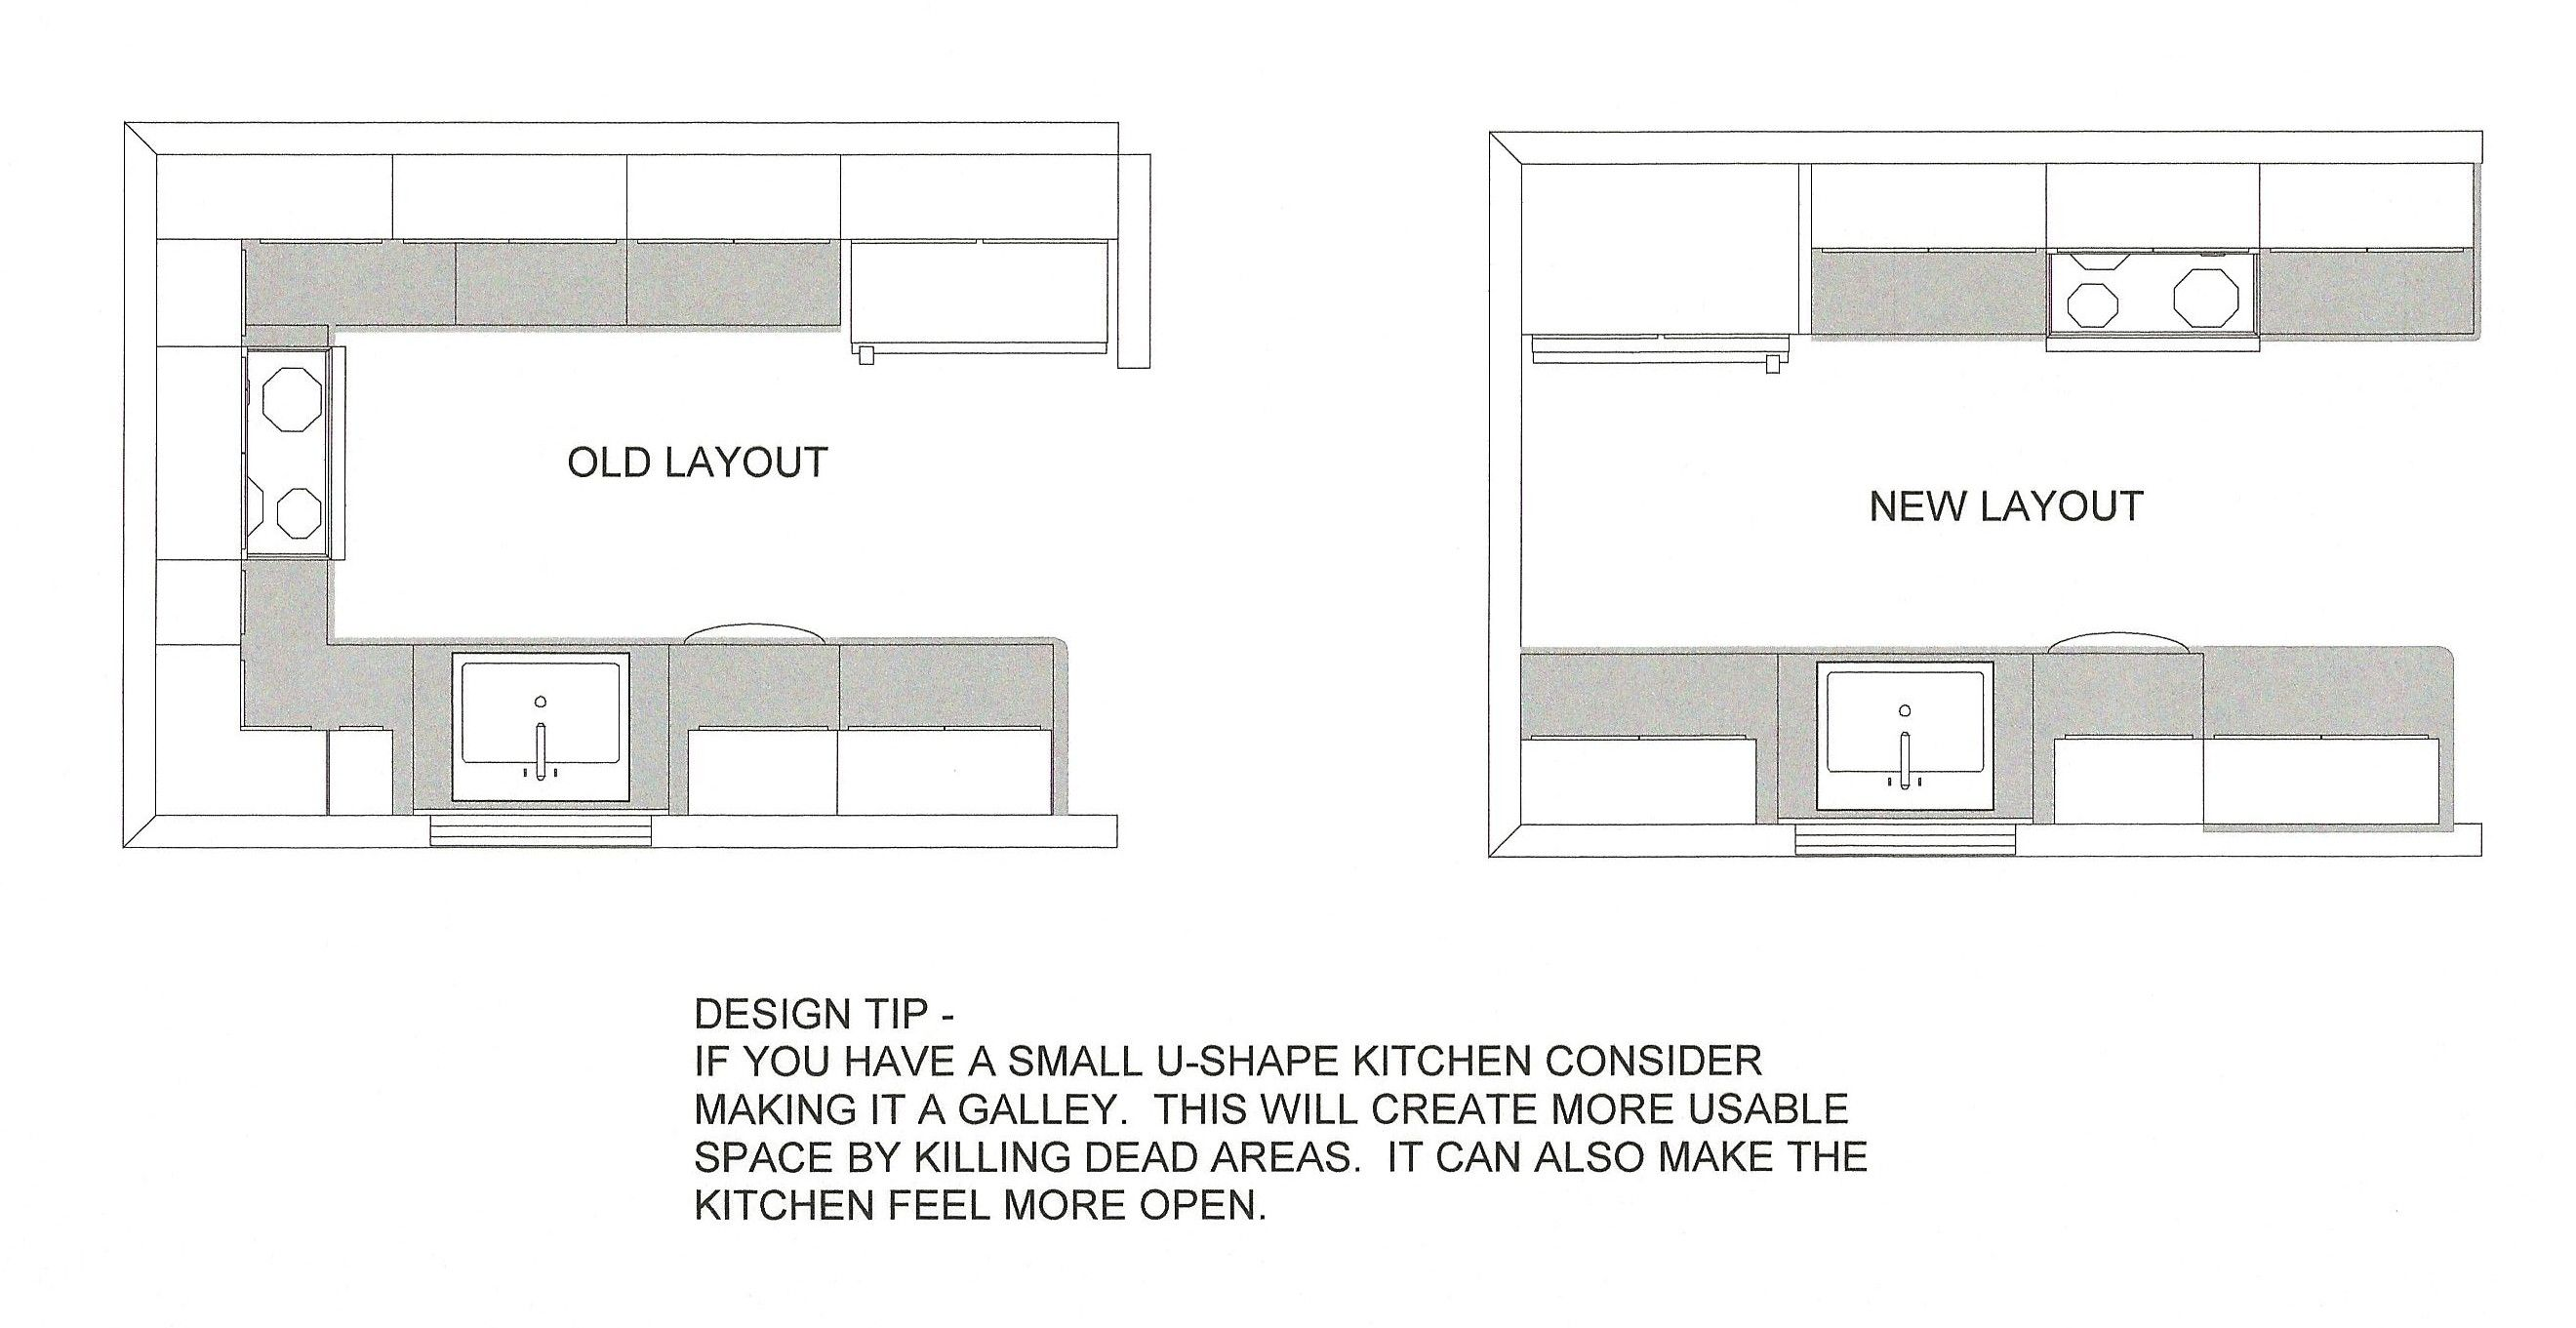 narrow u shaped kitchen designs - Google Search